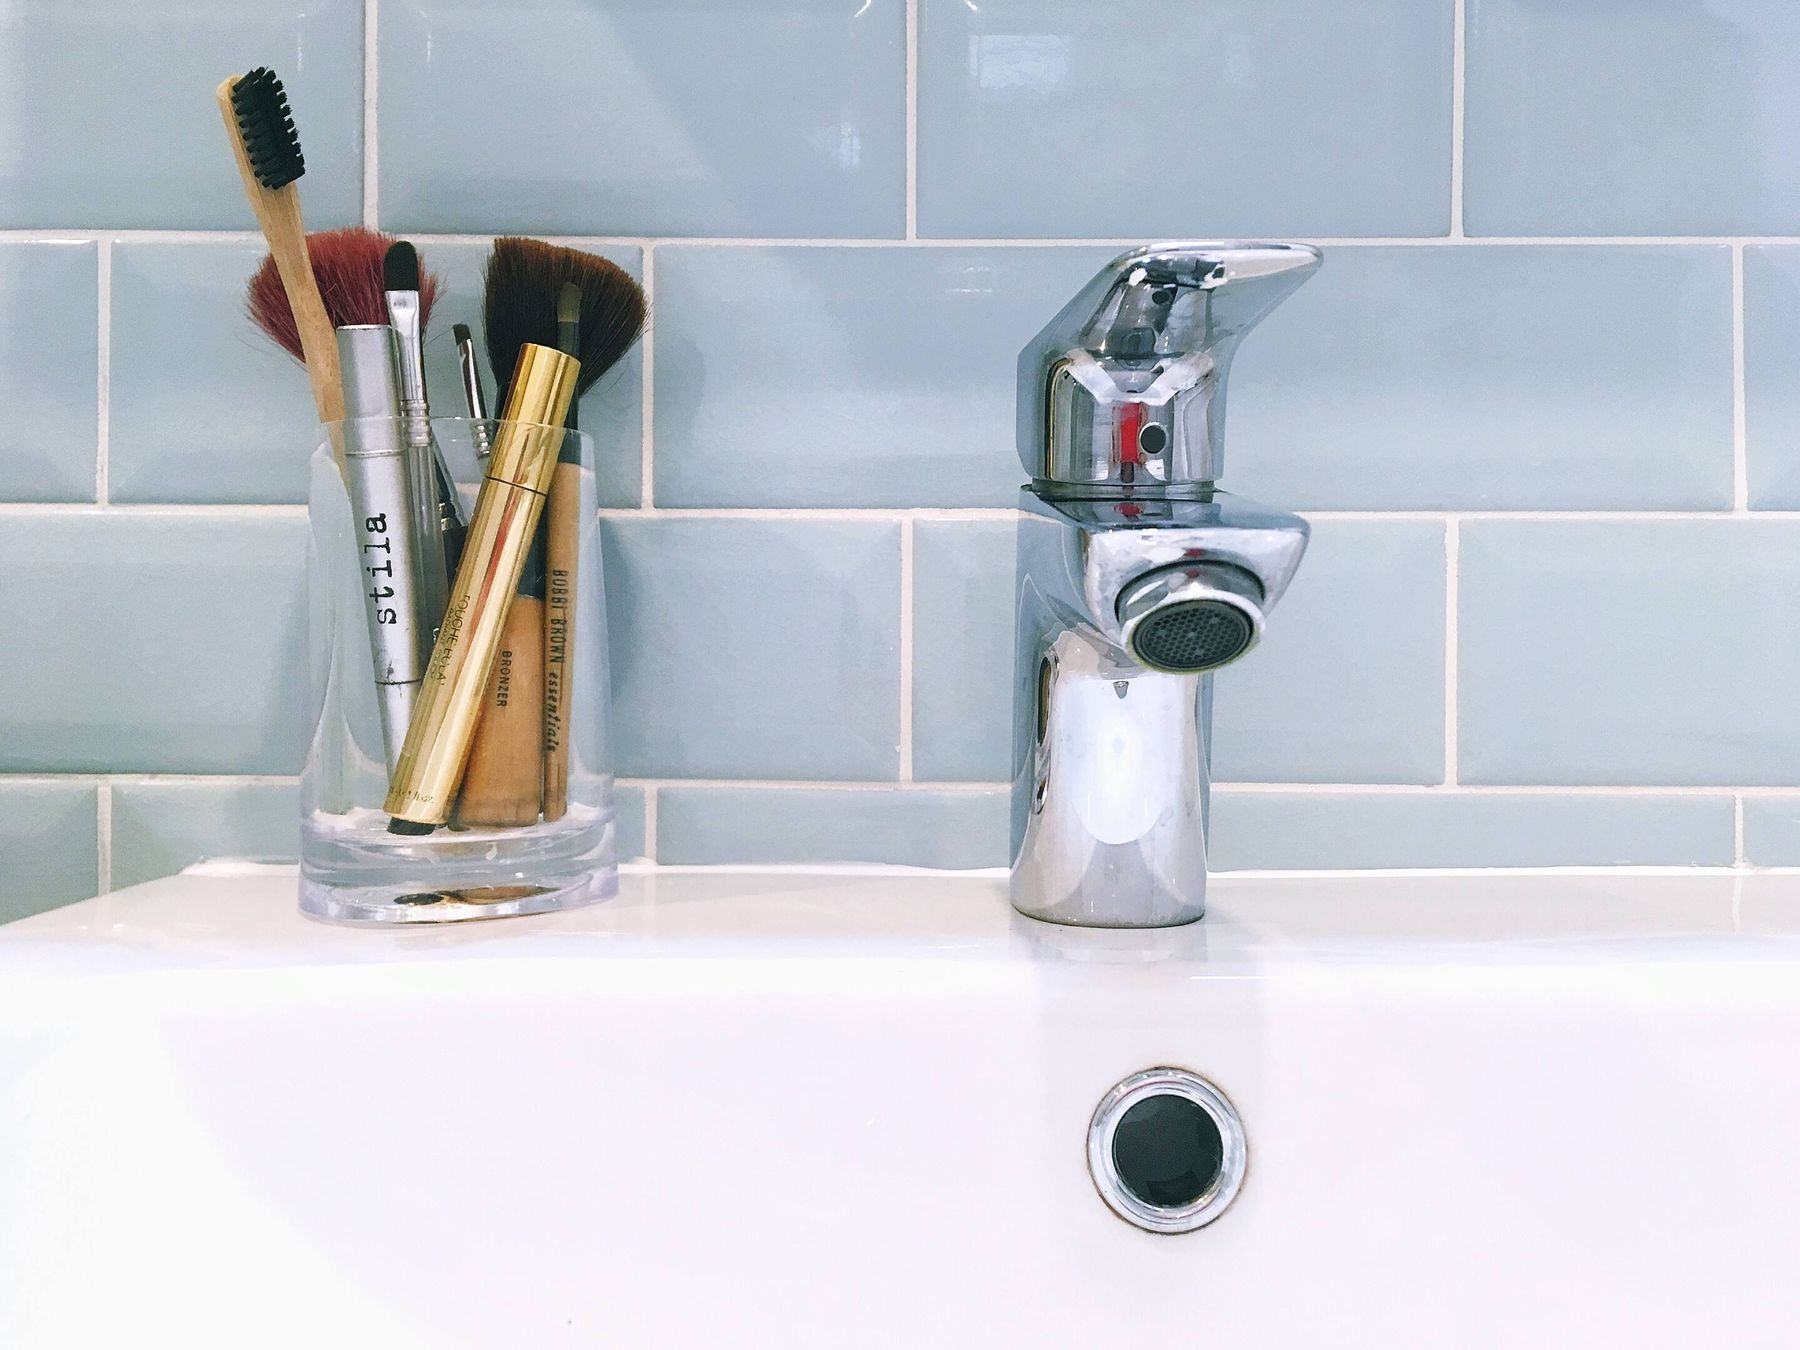 make-up brushes on the sink